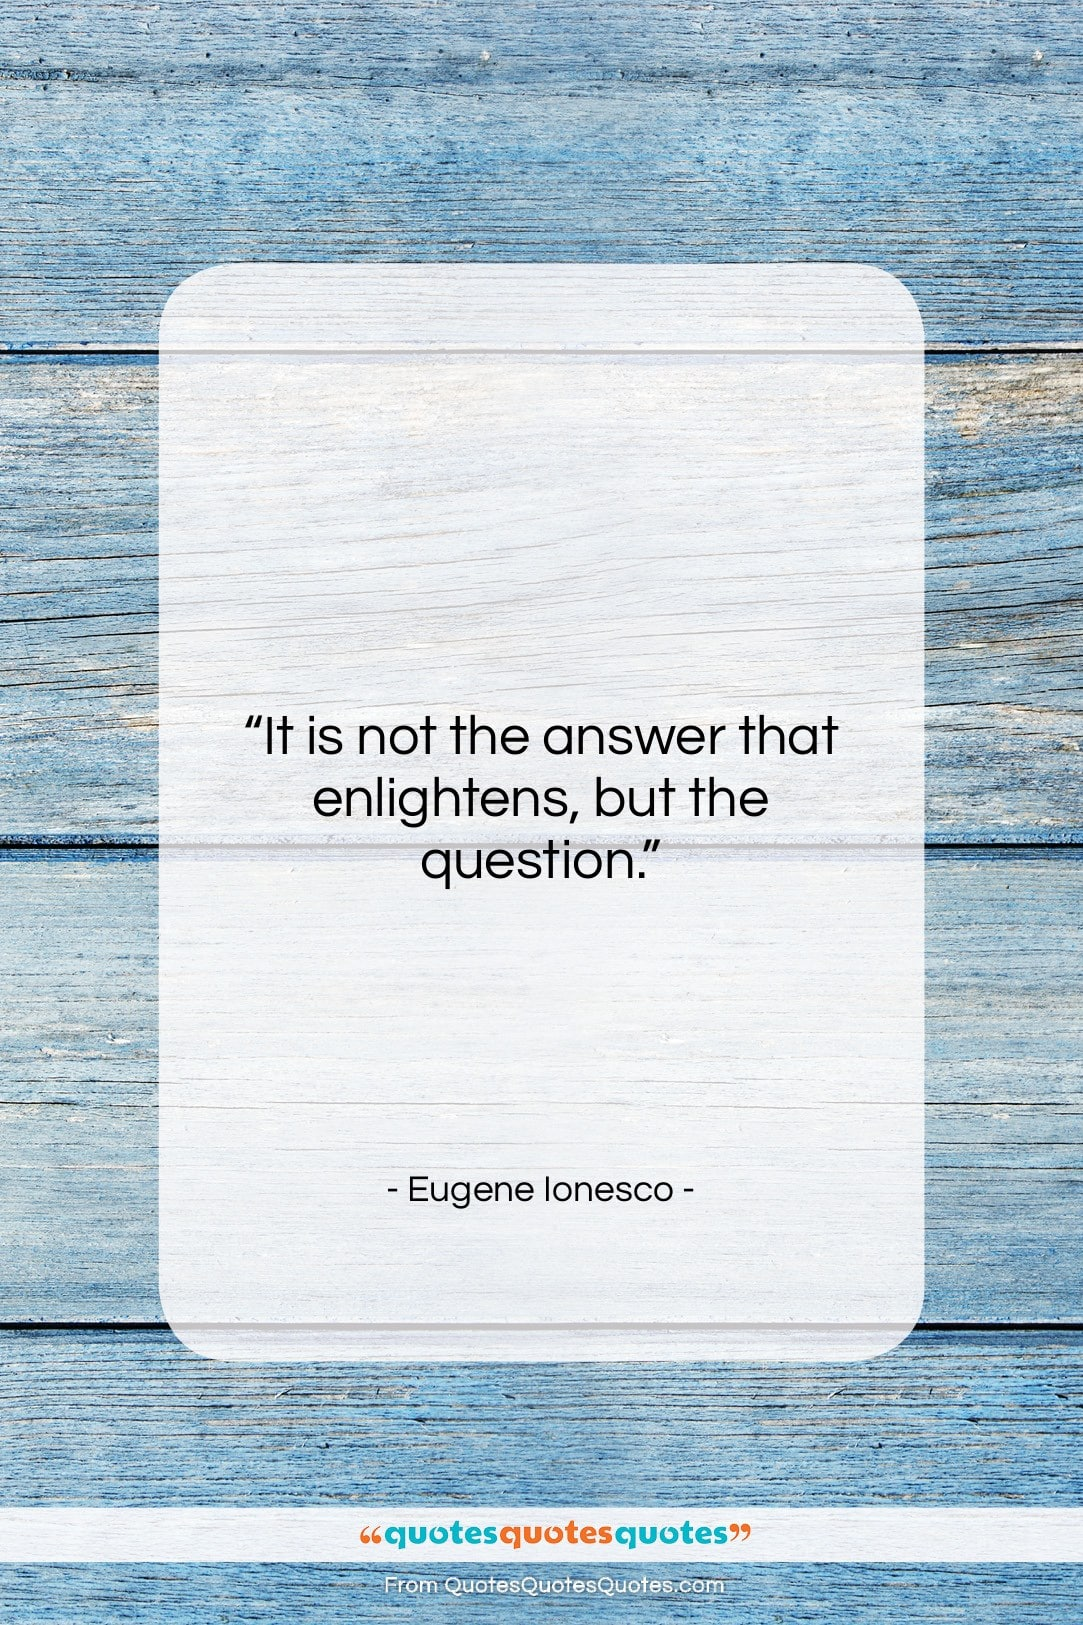 """Eugene Ionesco quote: """"It is not the answer that enlightens,…""""- at QuotesQuotesQuotes.com"""